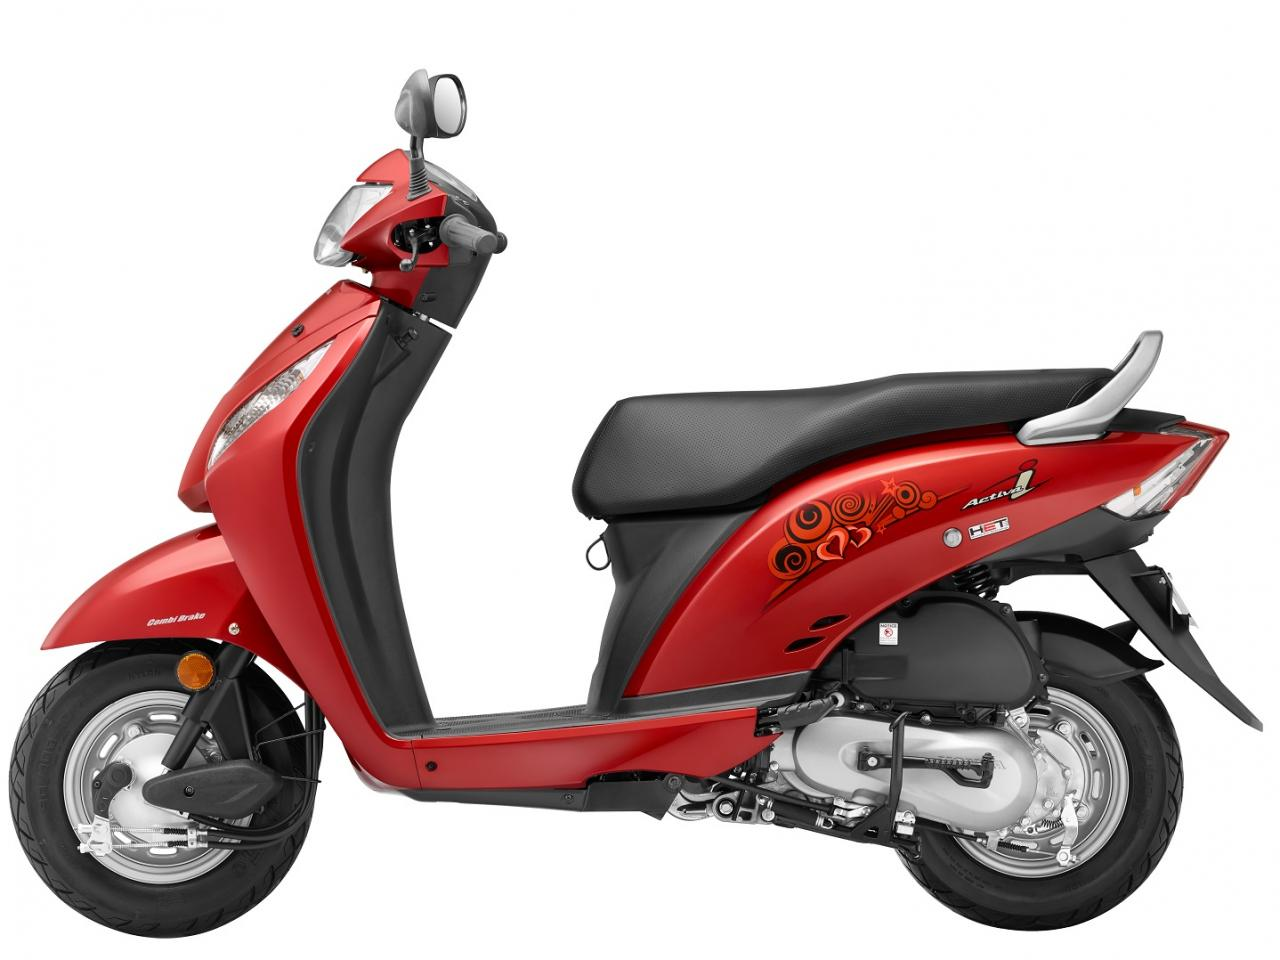 Honda activa i updated for 2016 model year gets 3 new colours for Honda 2016 models